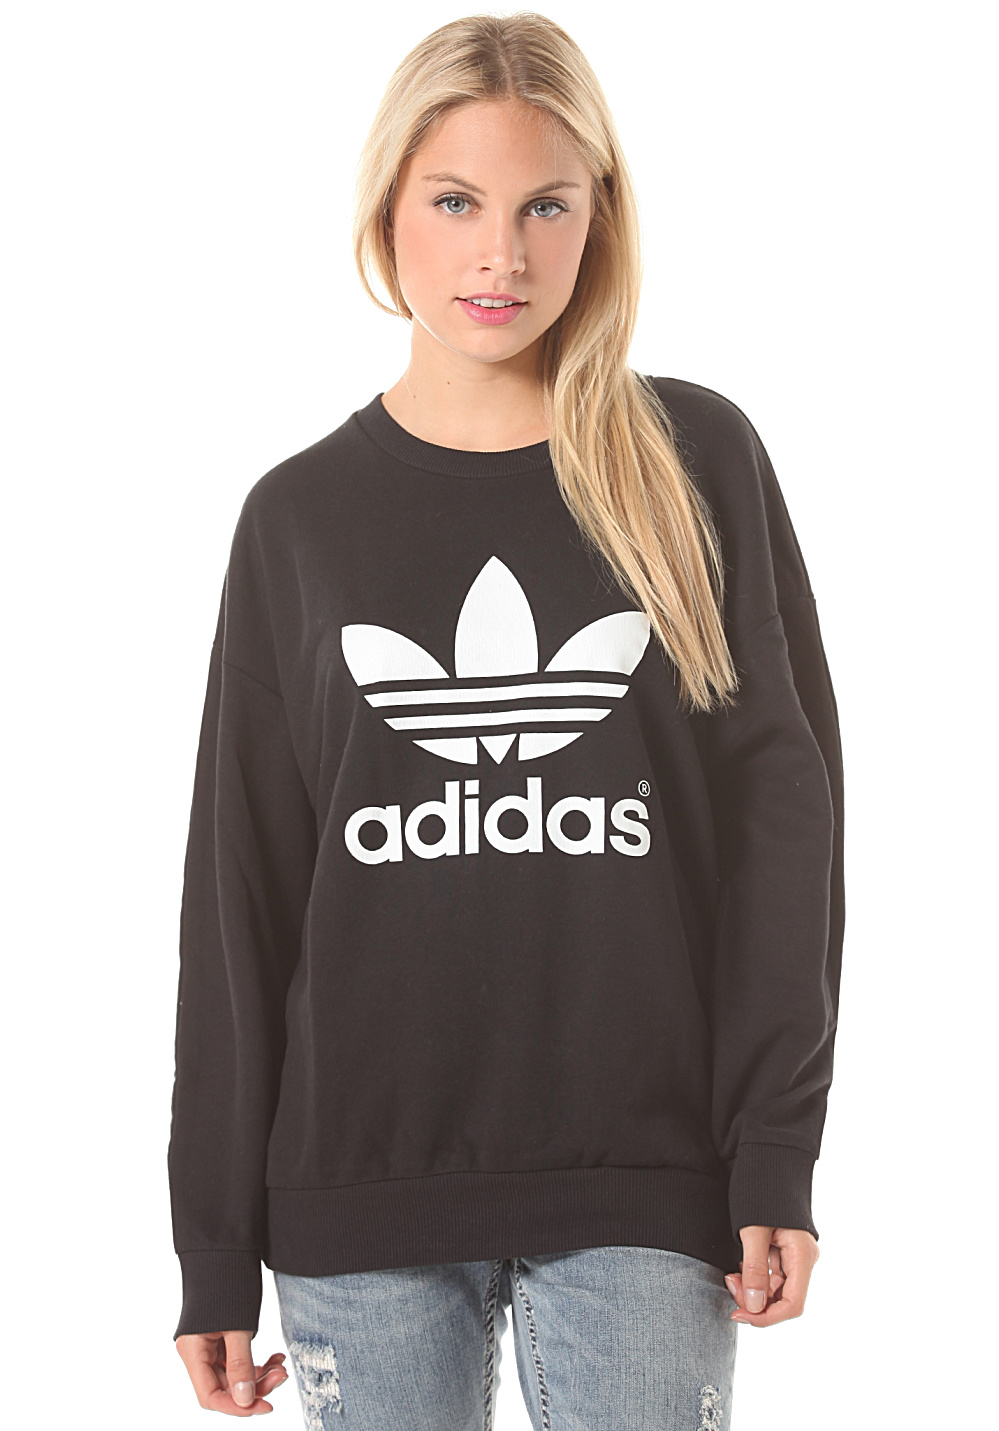 comprare on line 86afe dd605 felpe adidas donne scontate